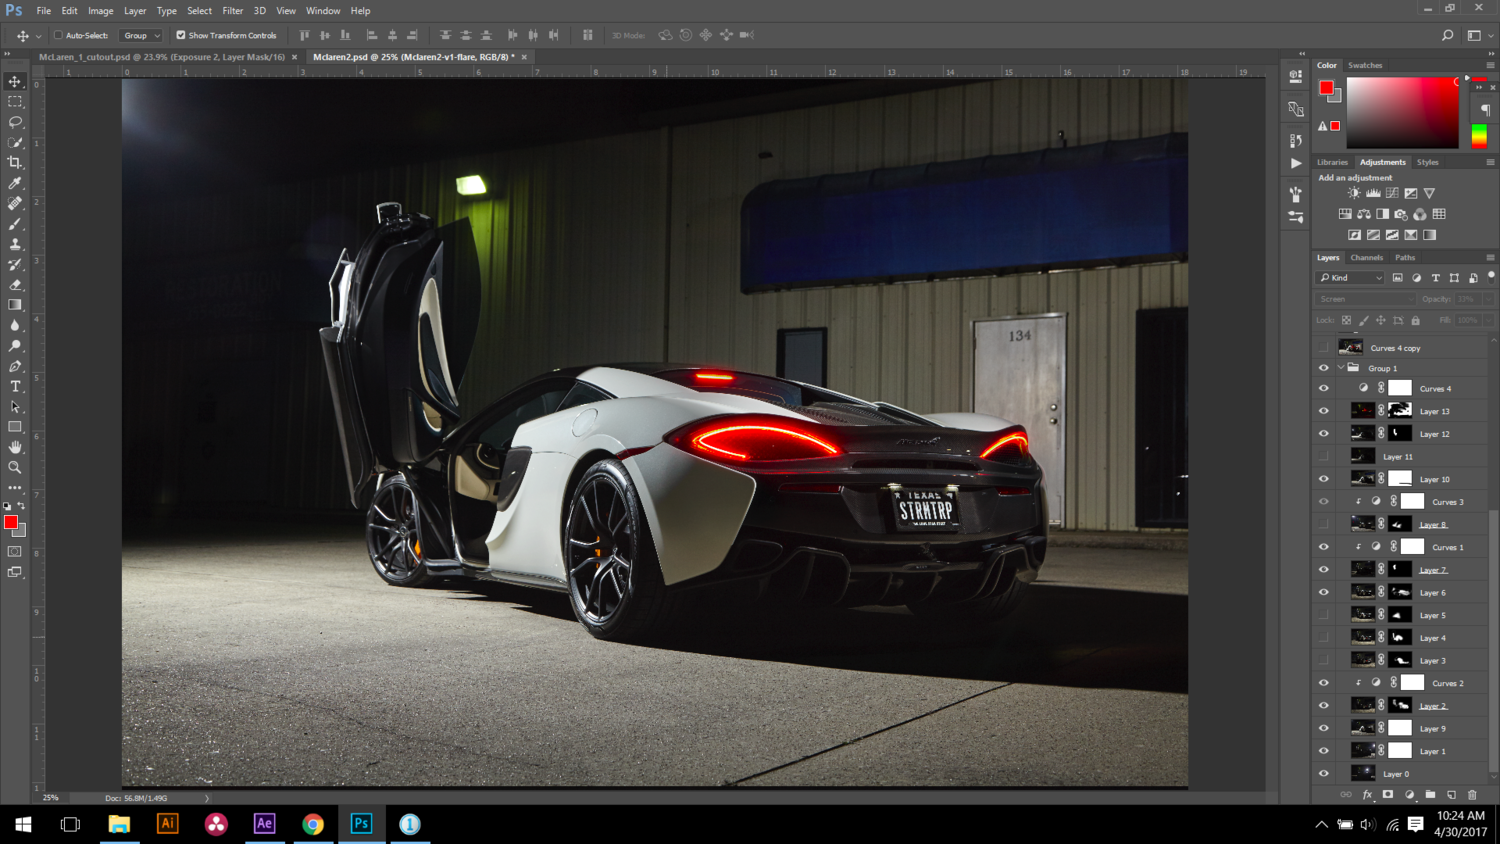 Photoshop Composite McLaren Stormtrooper Adobe